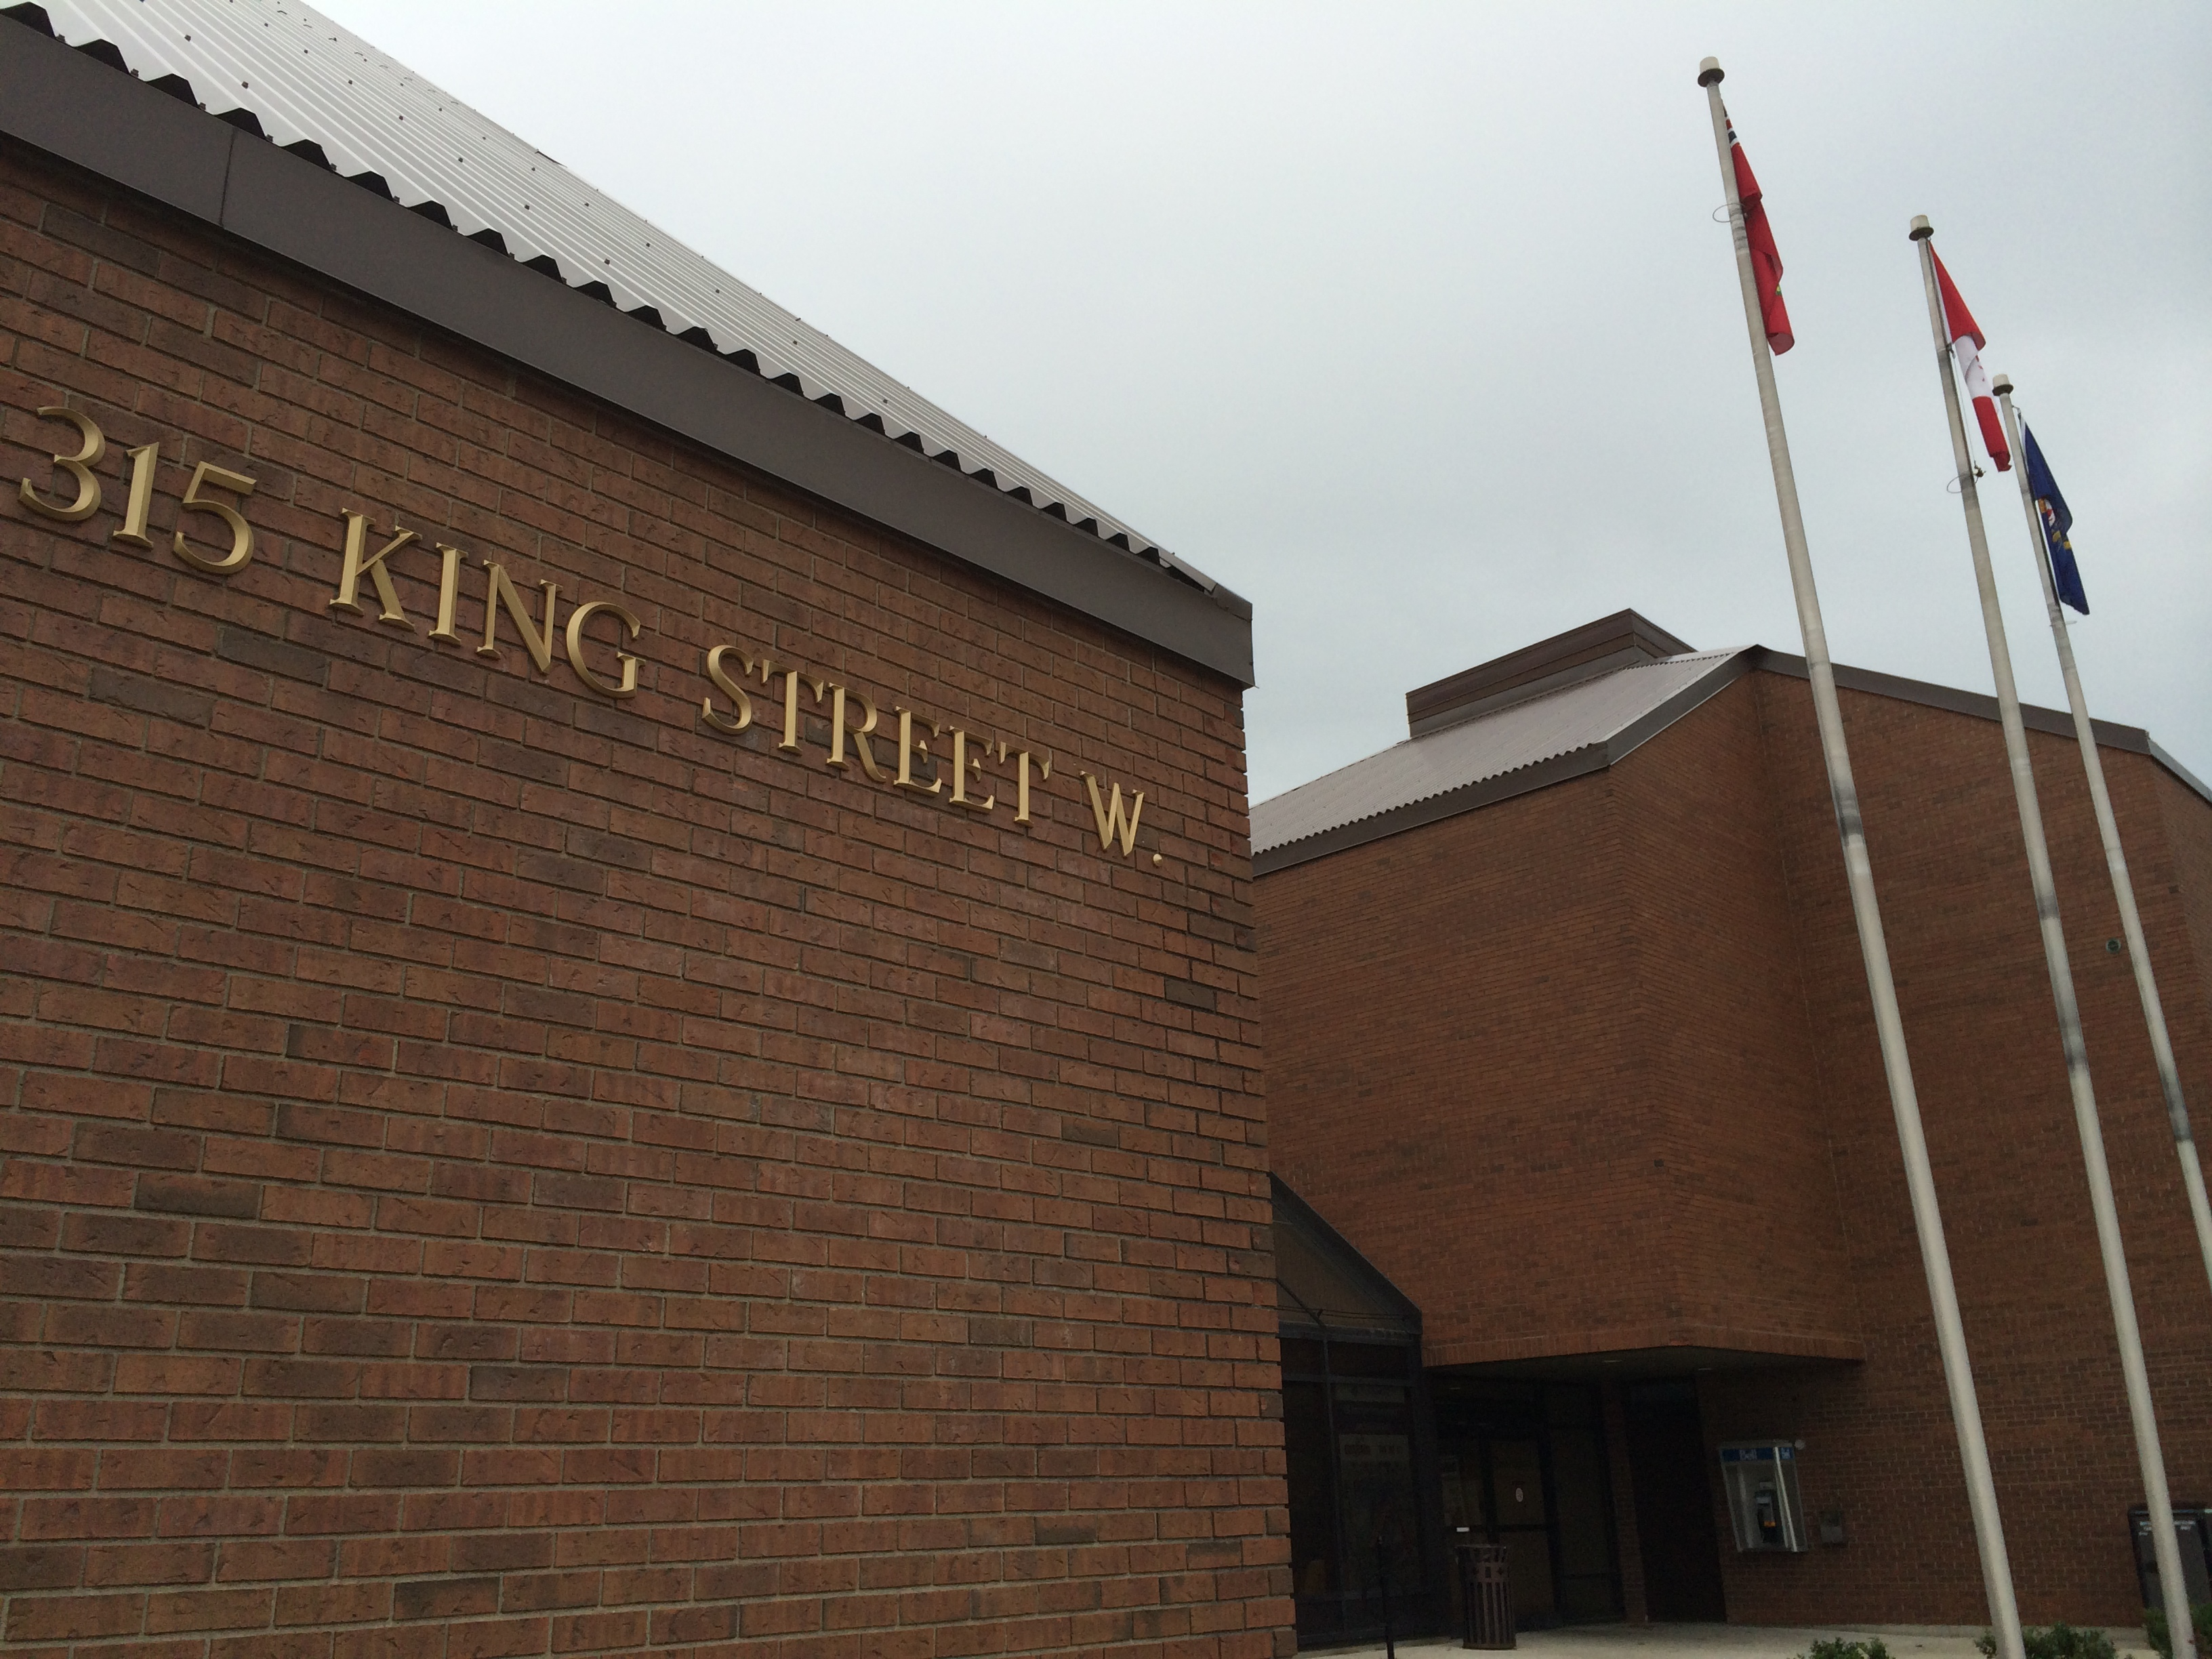 The Chatham-Kent Civic Centre is seen in this September 15, 2014 file photo. (Photo by Ricardo Veneza)